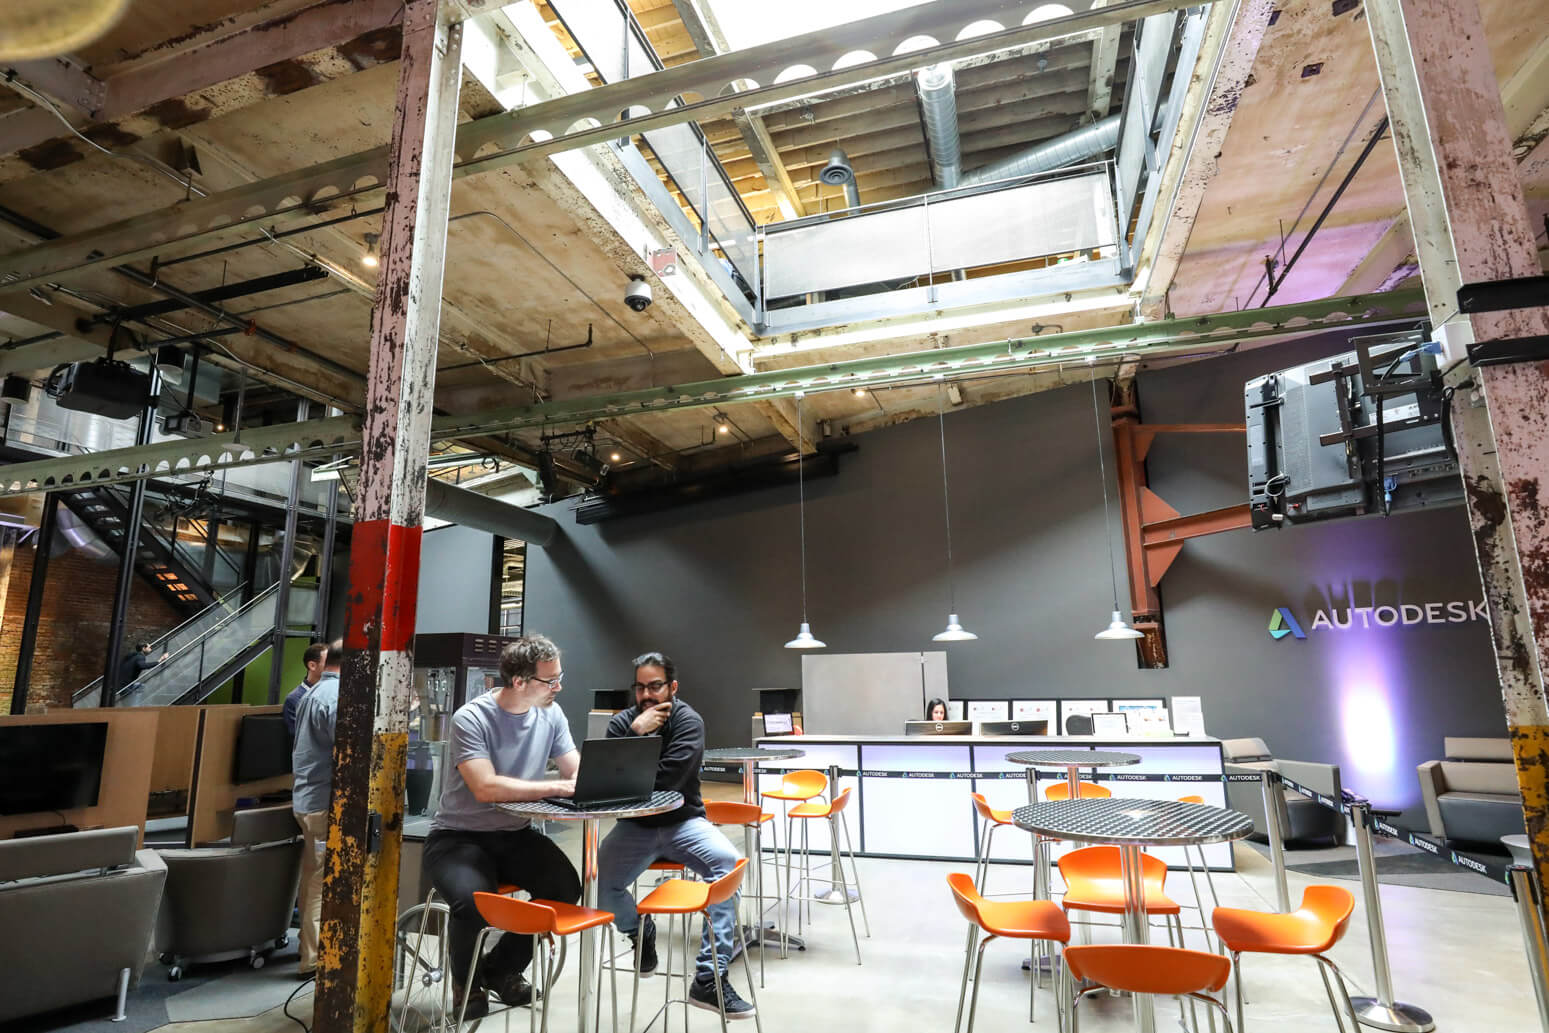 Autodesk Montreal Office Killer Spaces-17